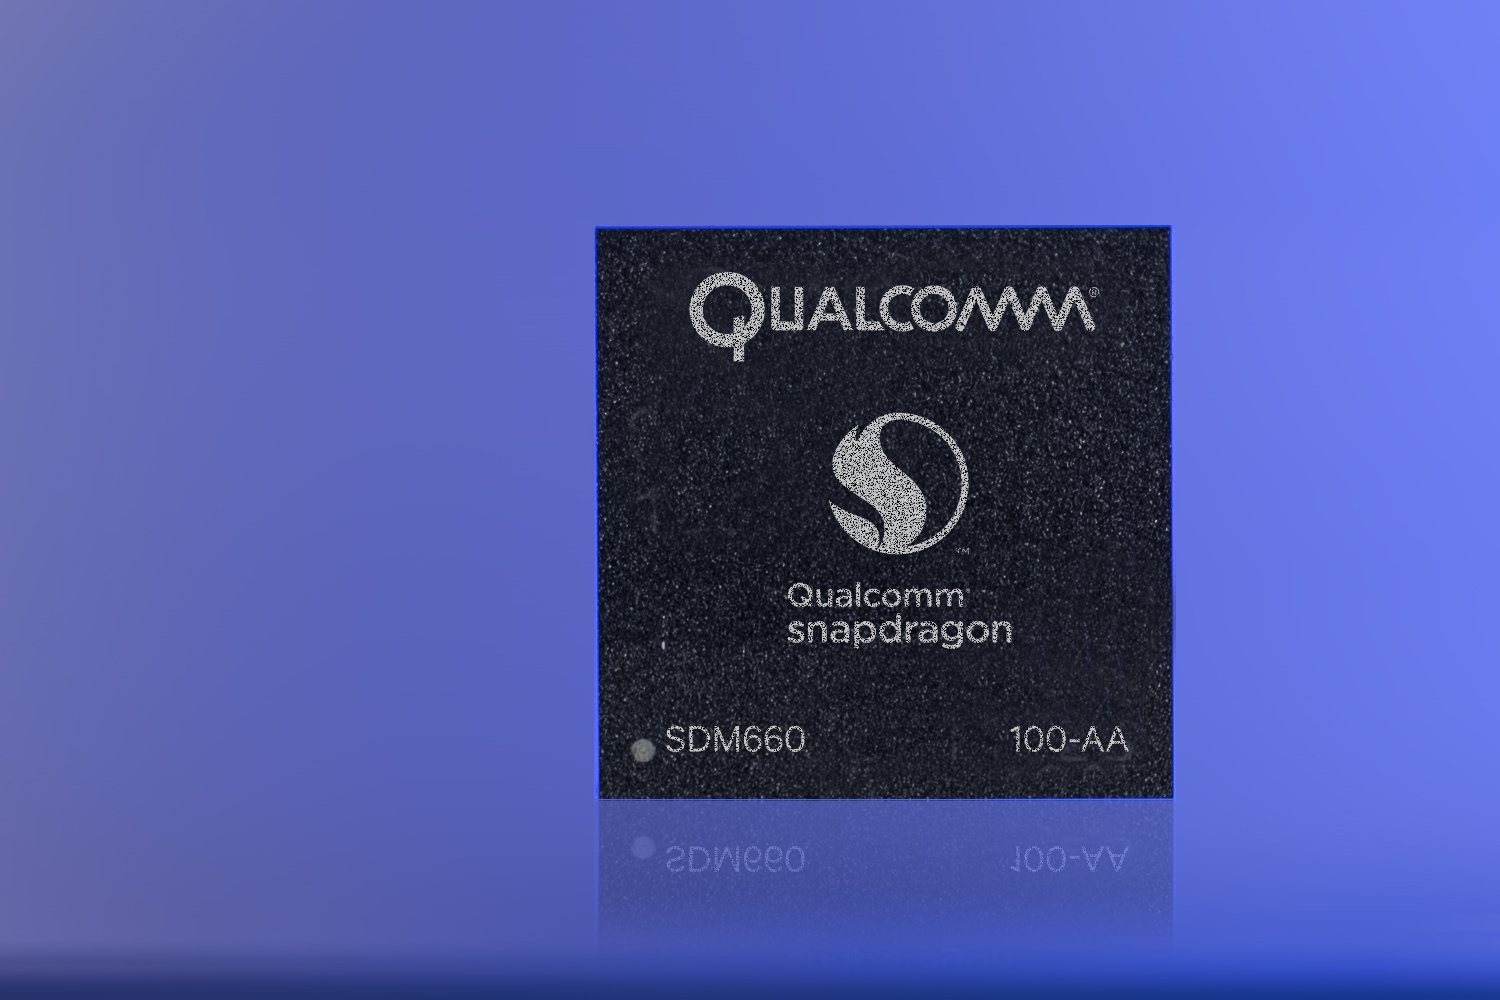 Qualcomm Snapdragon 660 Mobile Platform